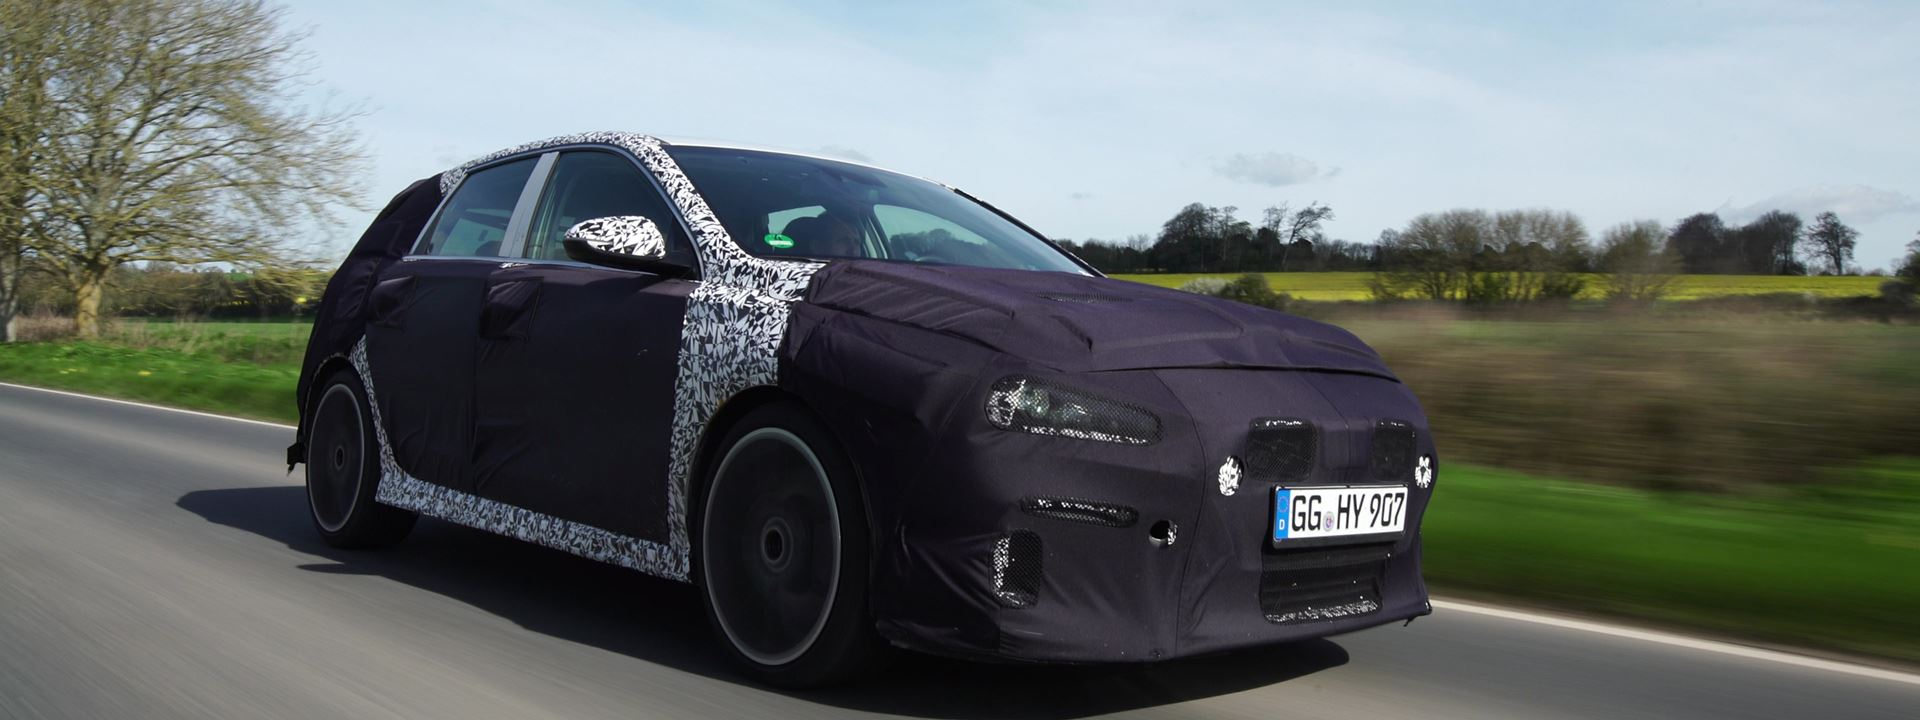 Video spectaculaire test Hyundai i30 N in Engeland